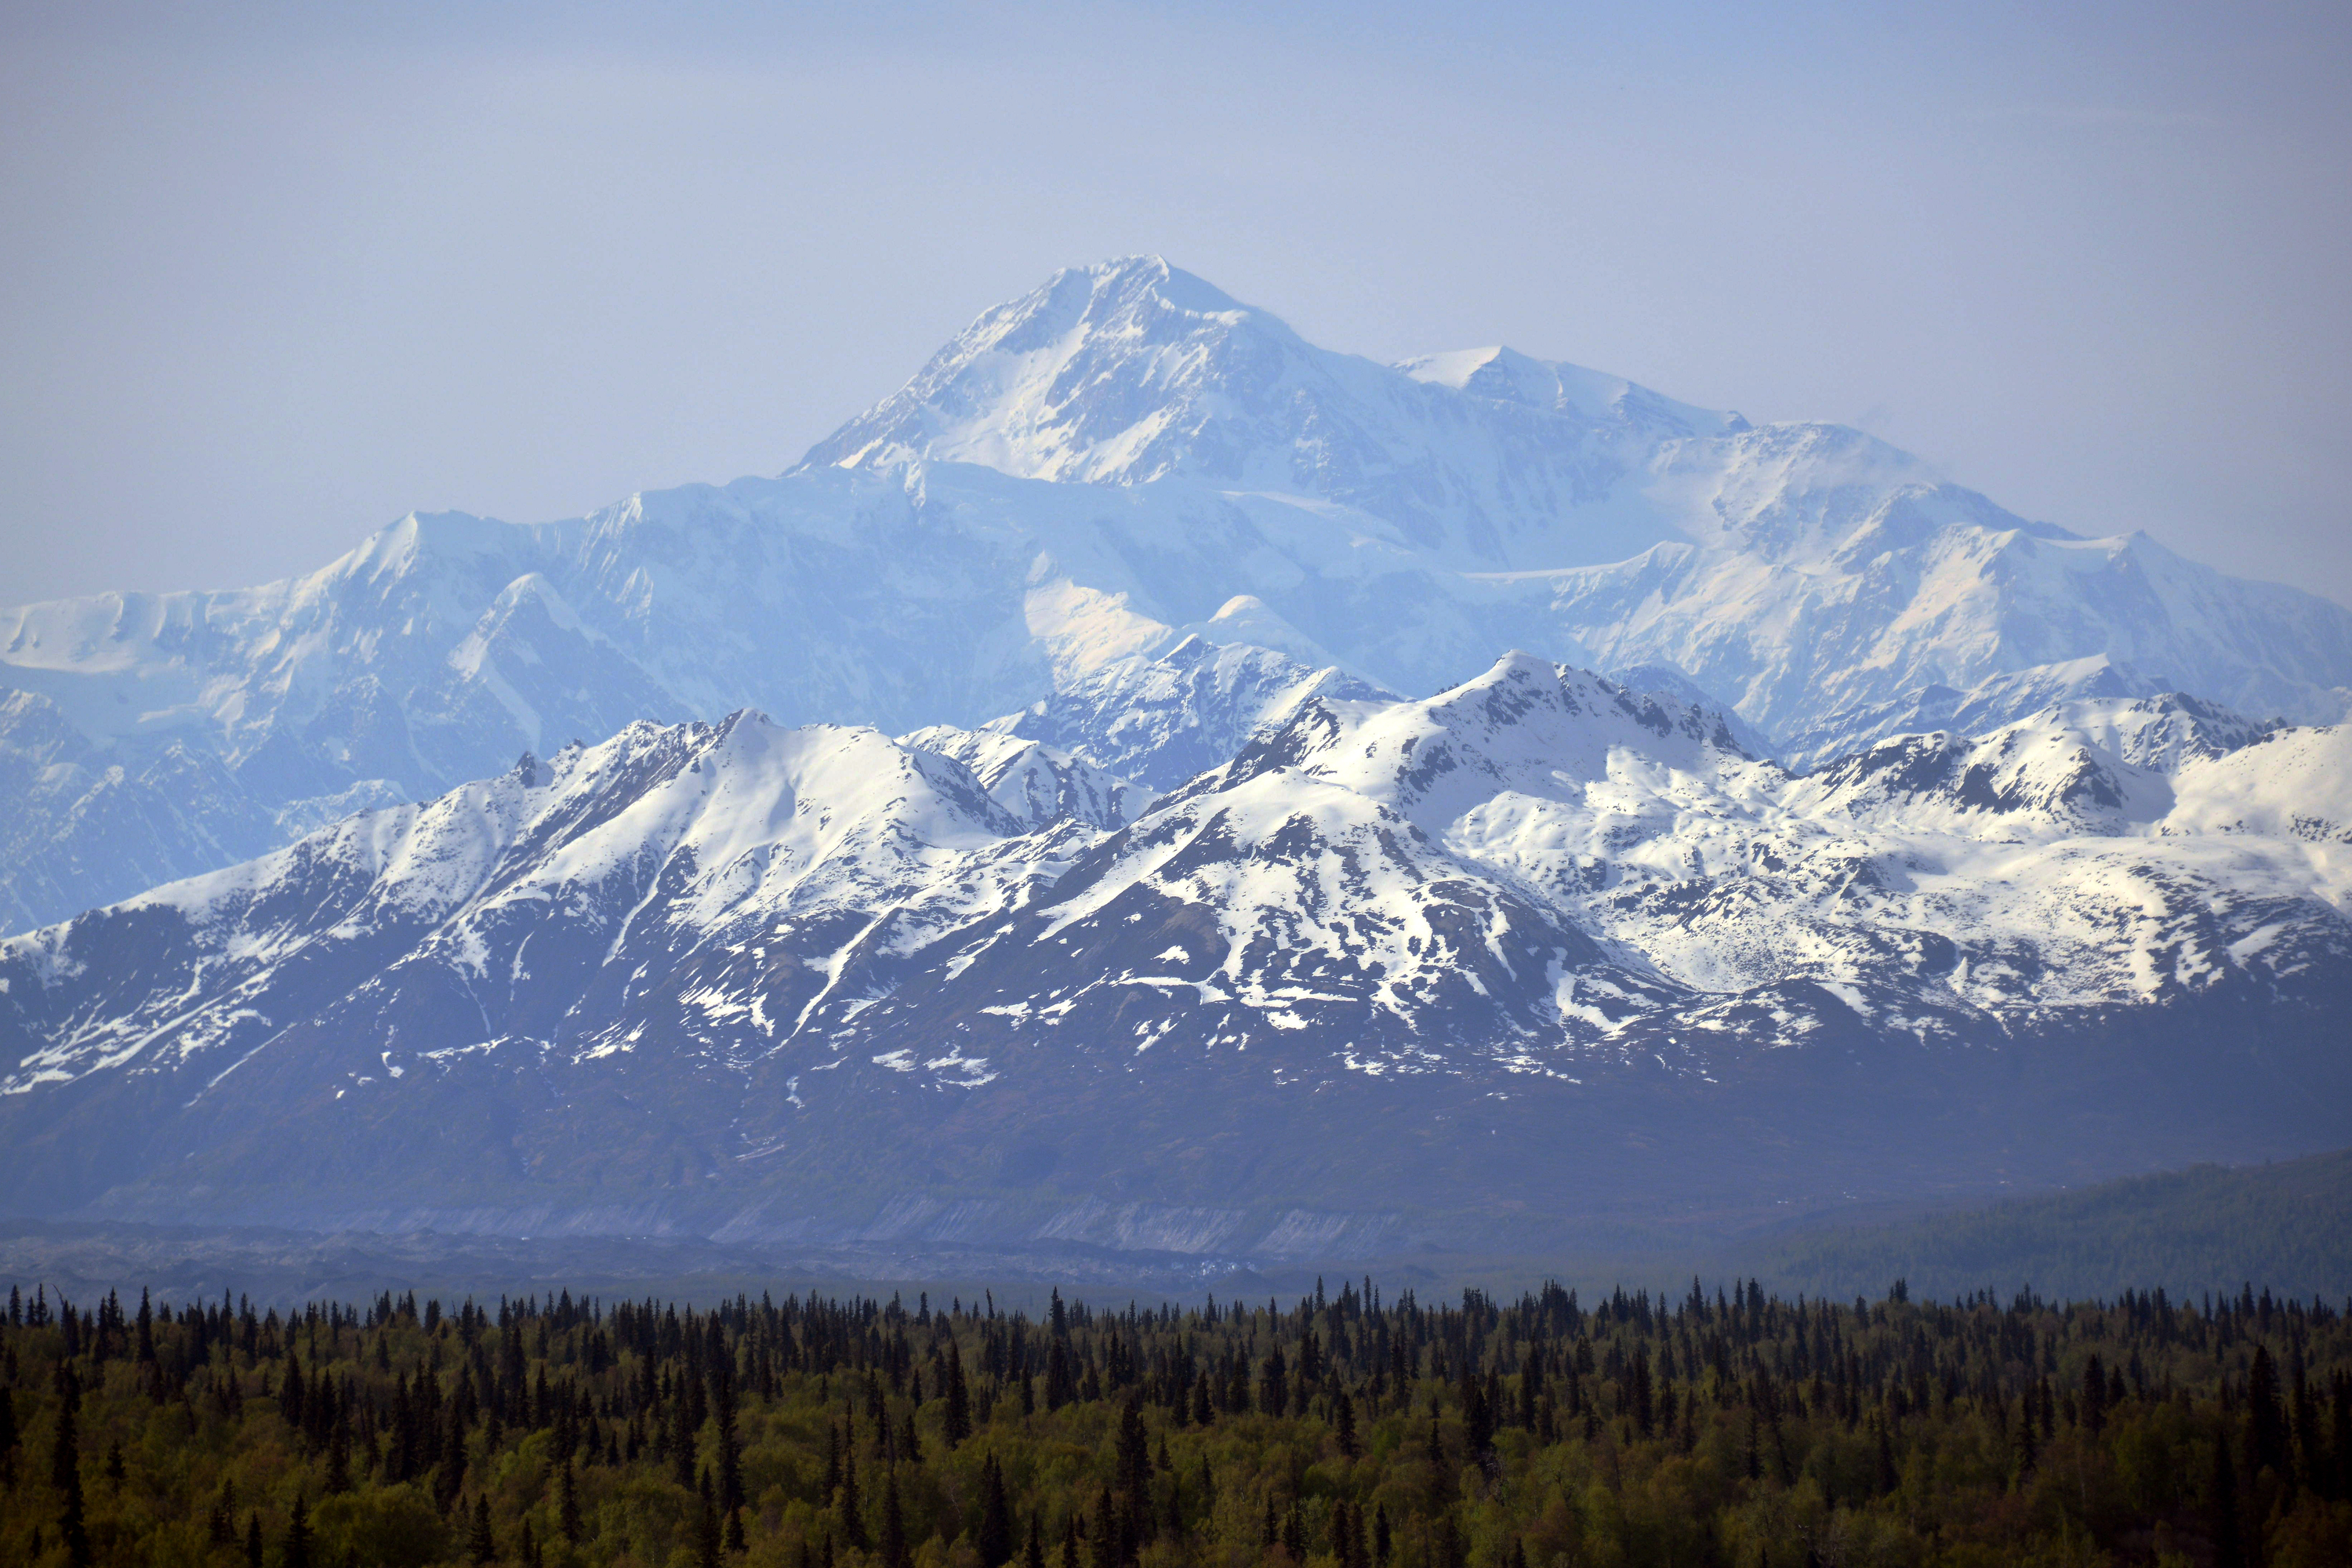 Mt. McKinley on May 15, 2014 in Denali National Park, Alaska.